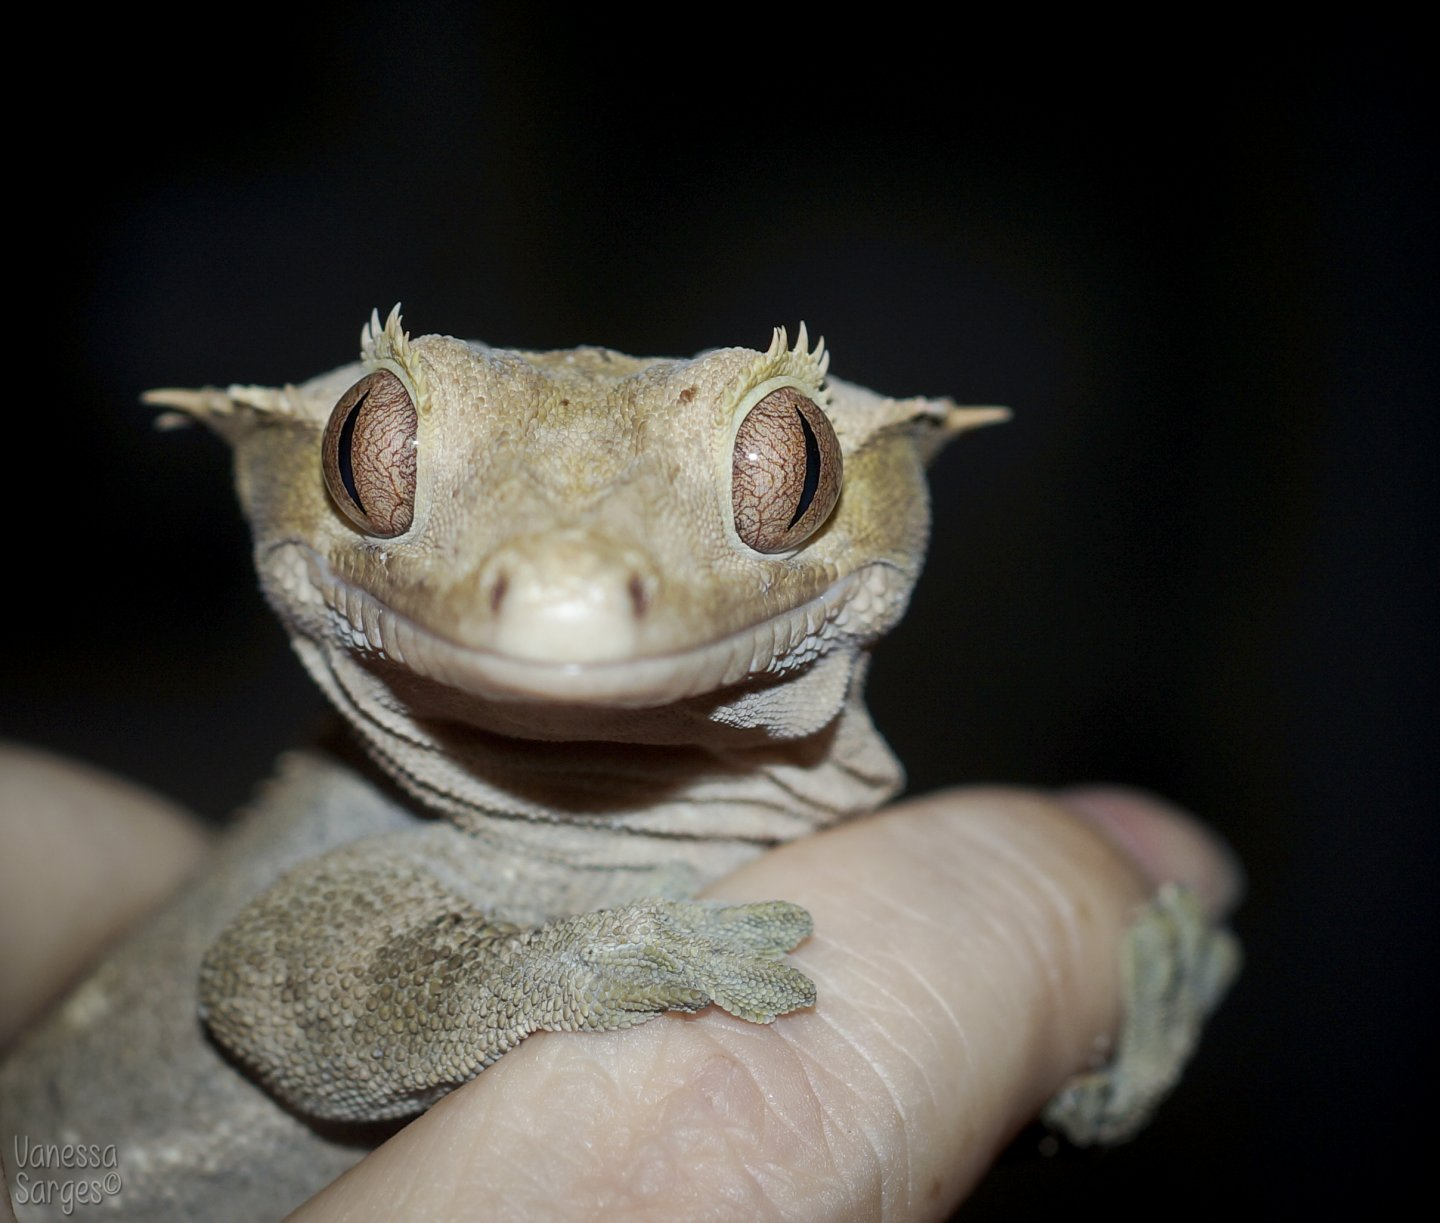 Ajax the Crested Gecko